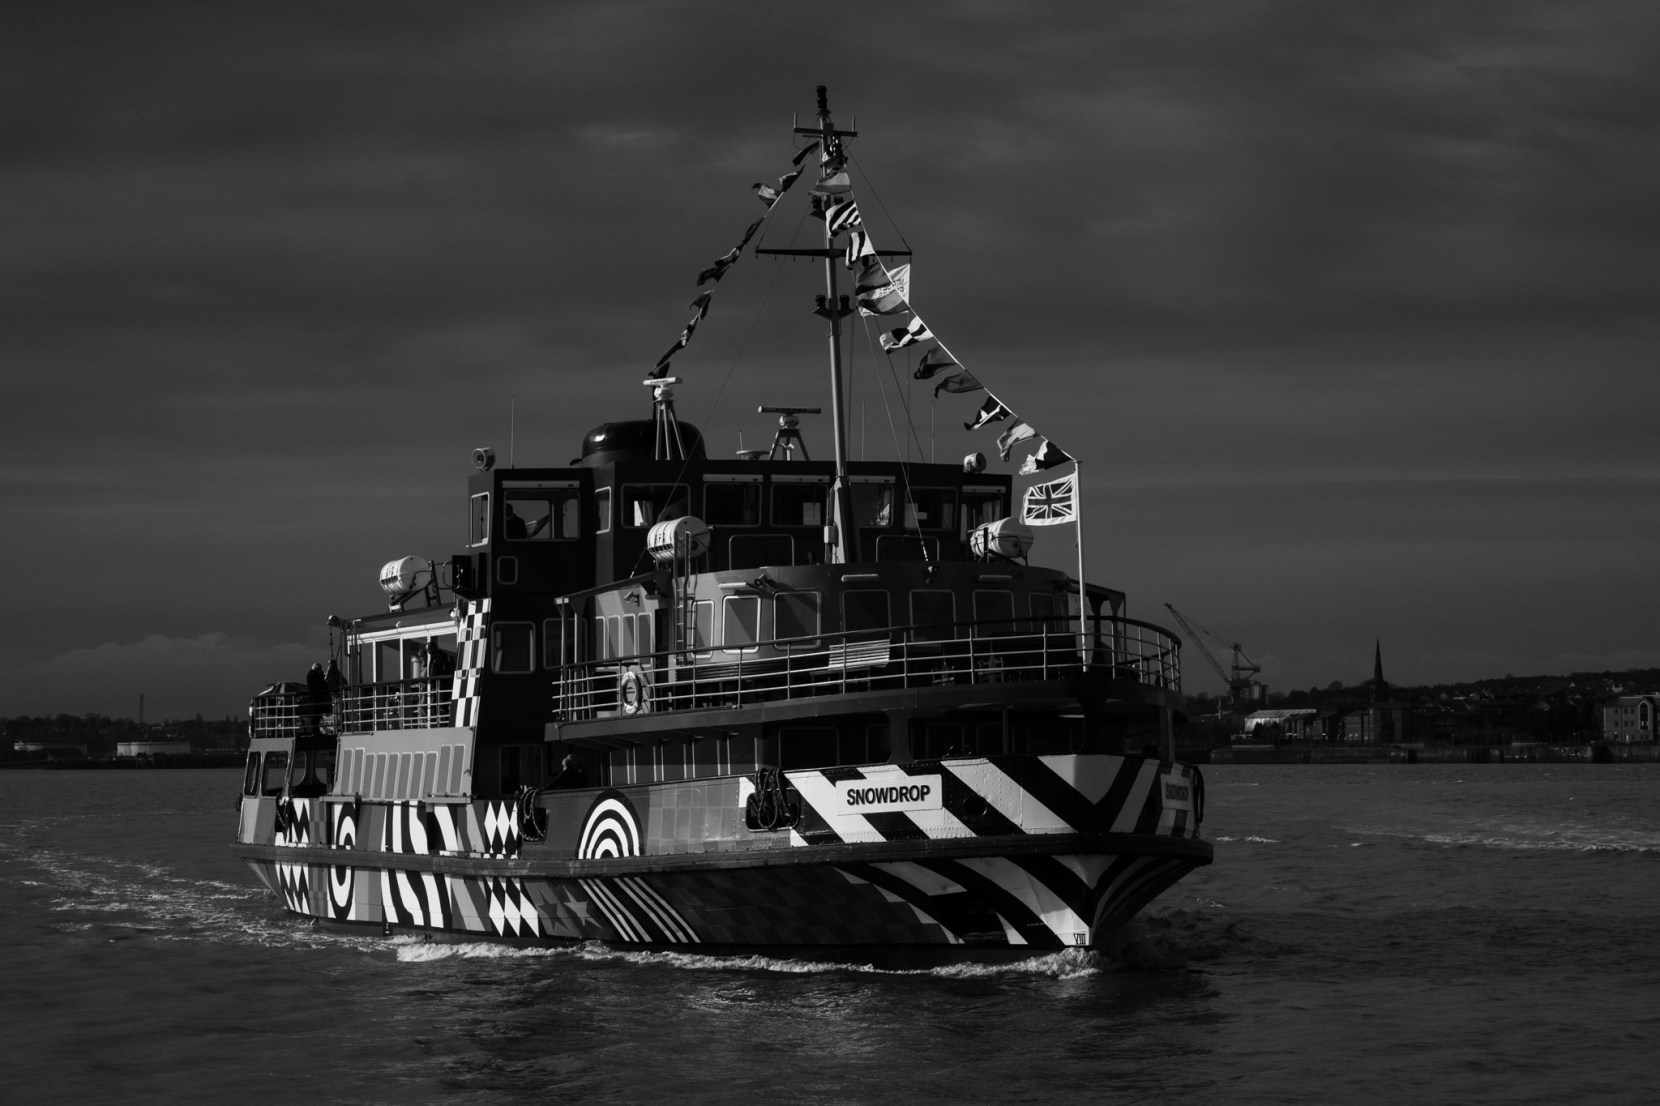 dazzle-ferry-liverpool-3018-3